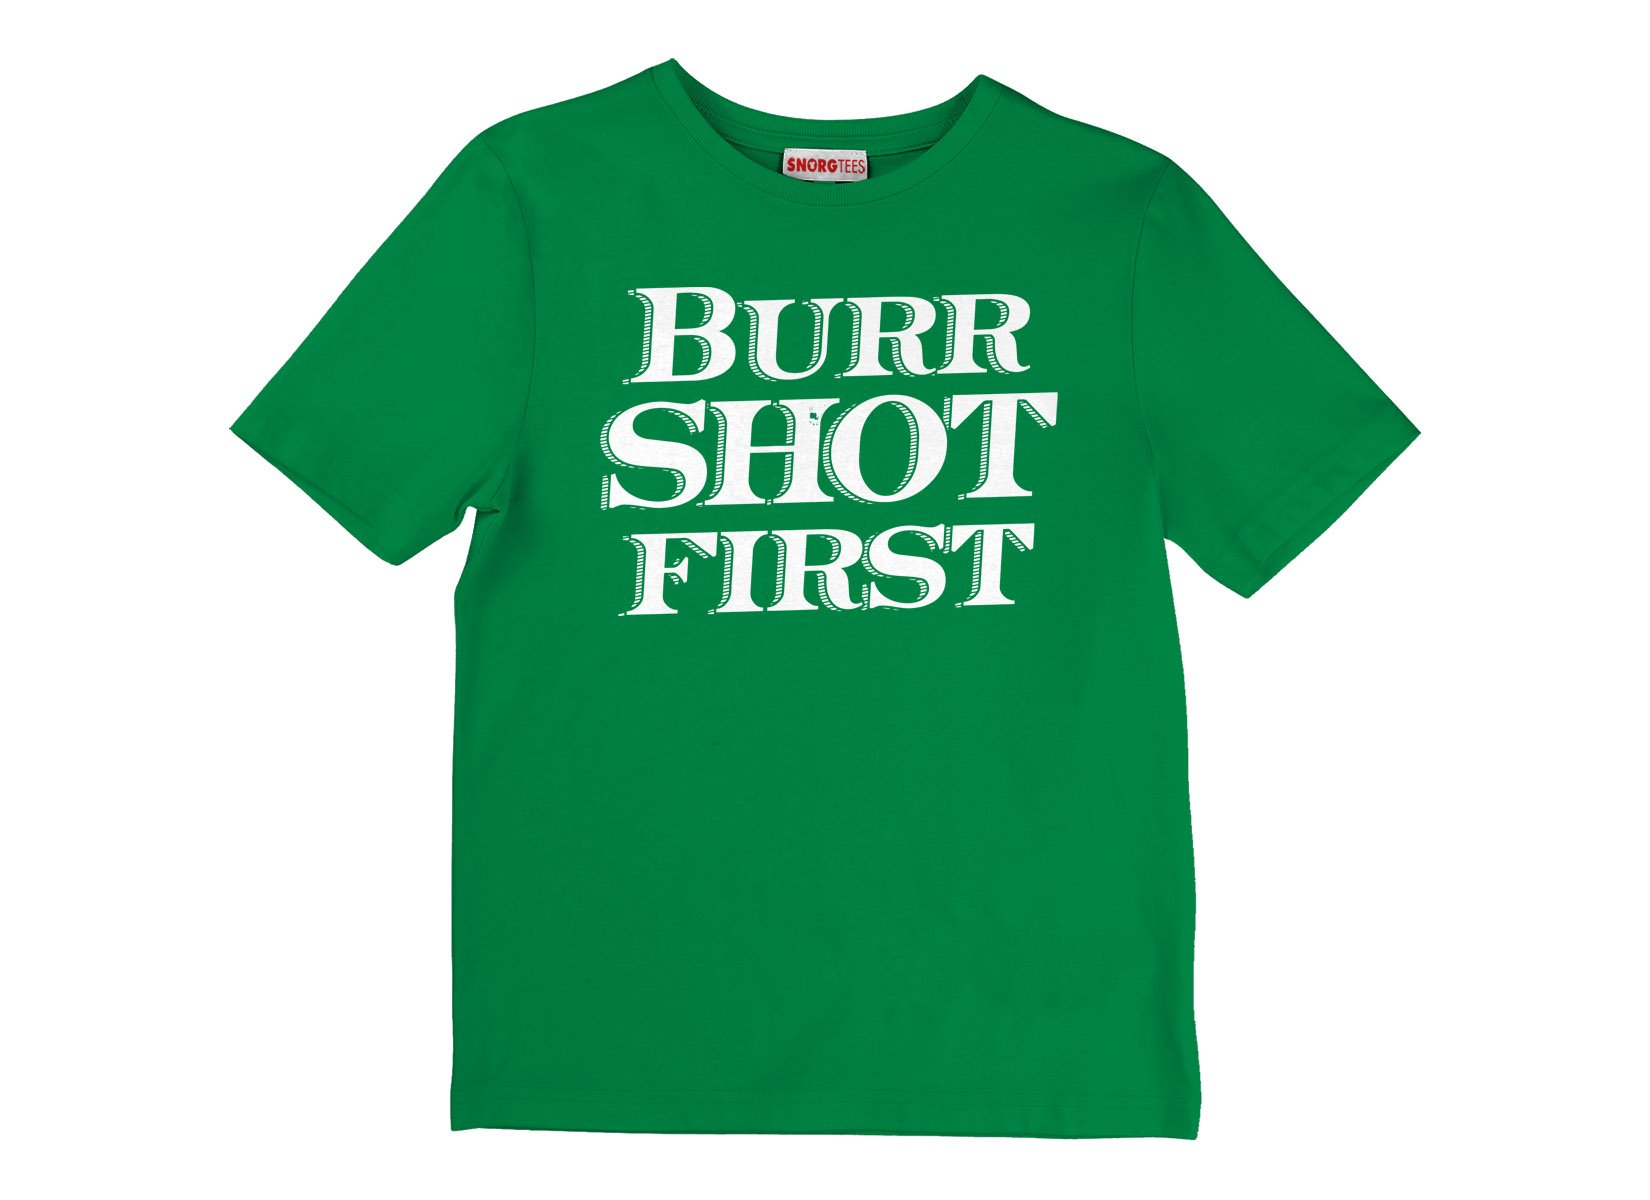 Burr Shot First on Kids T-Shirt